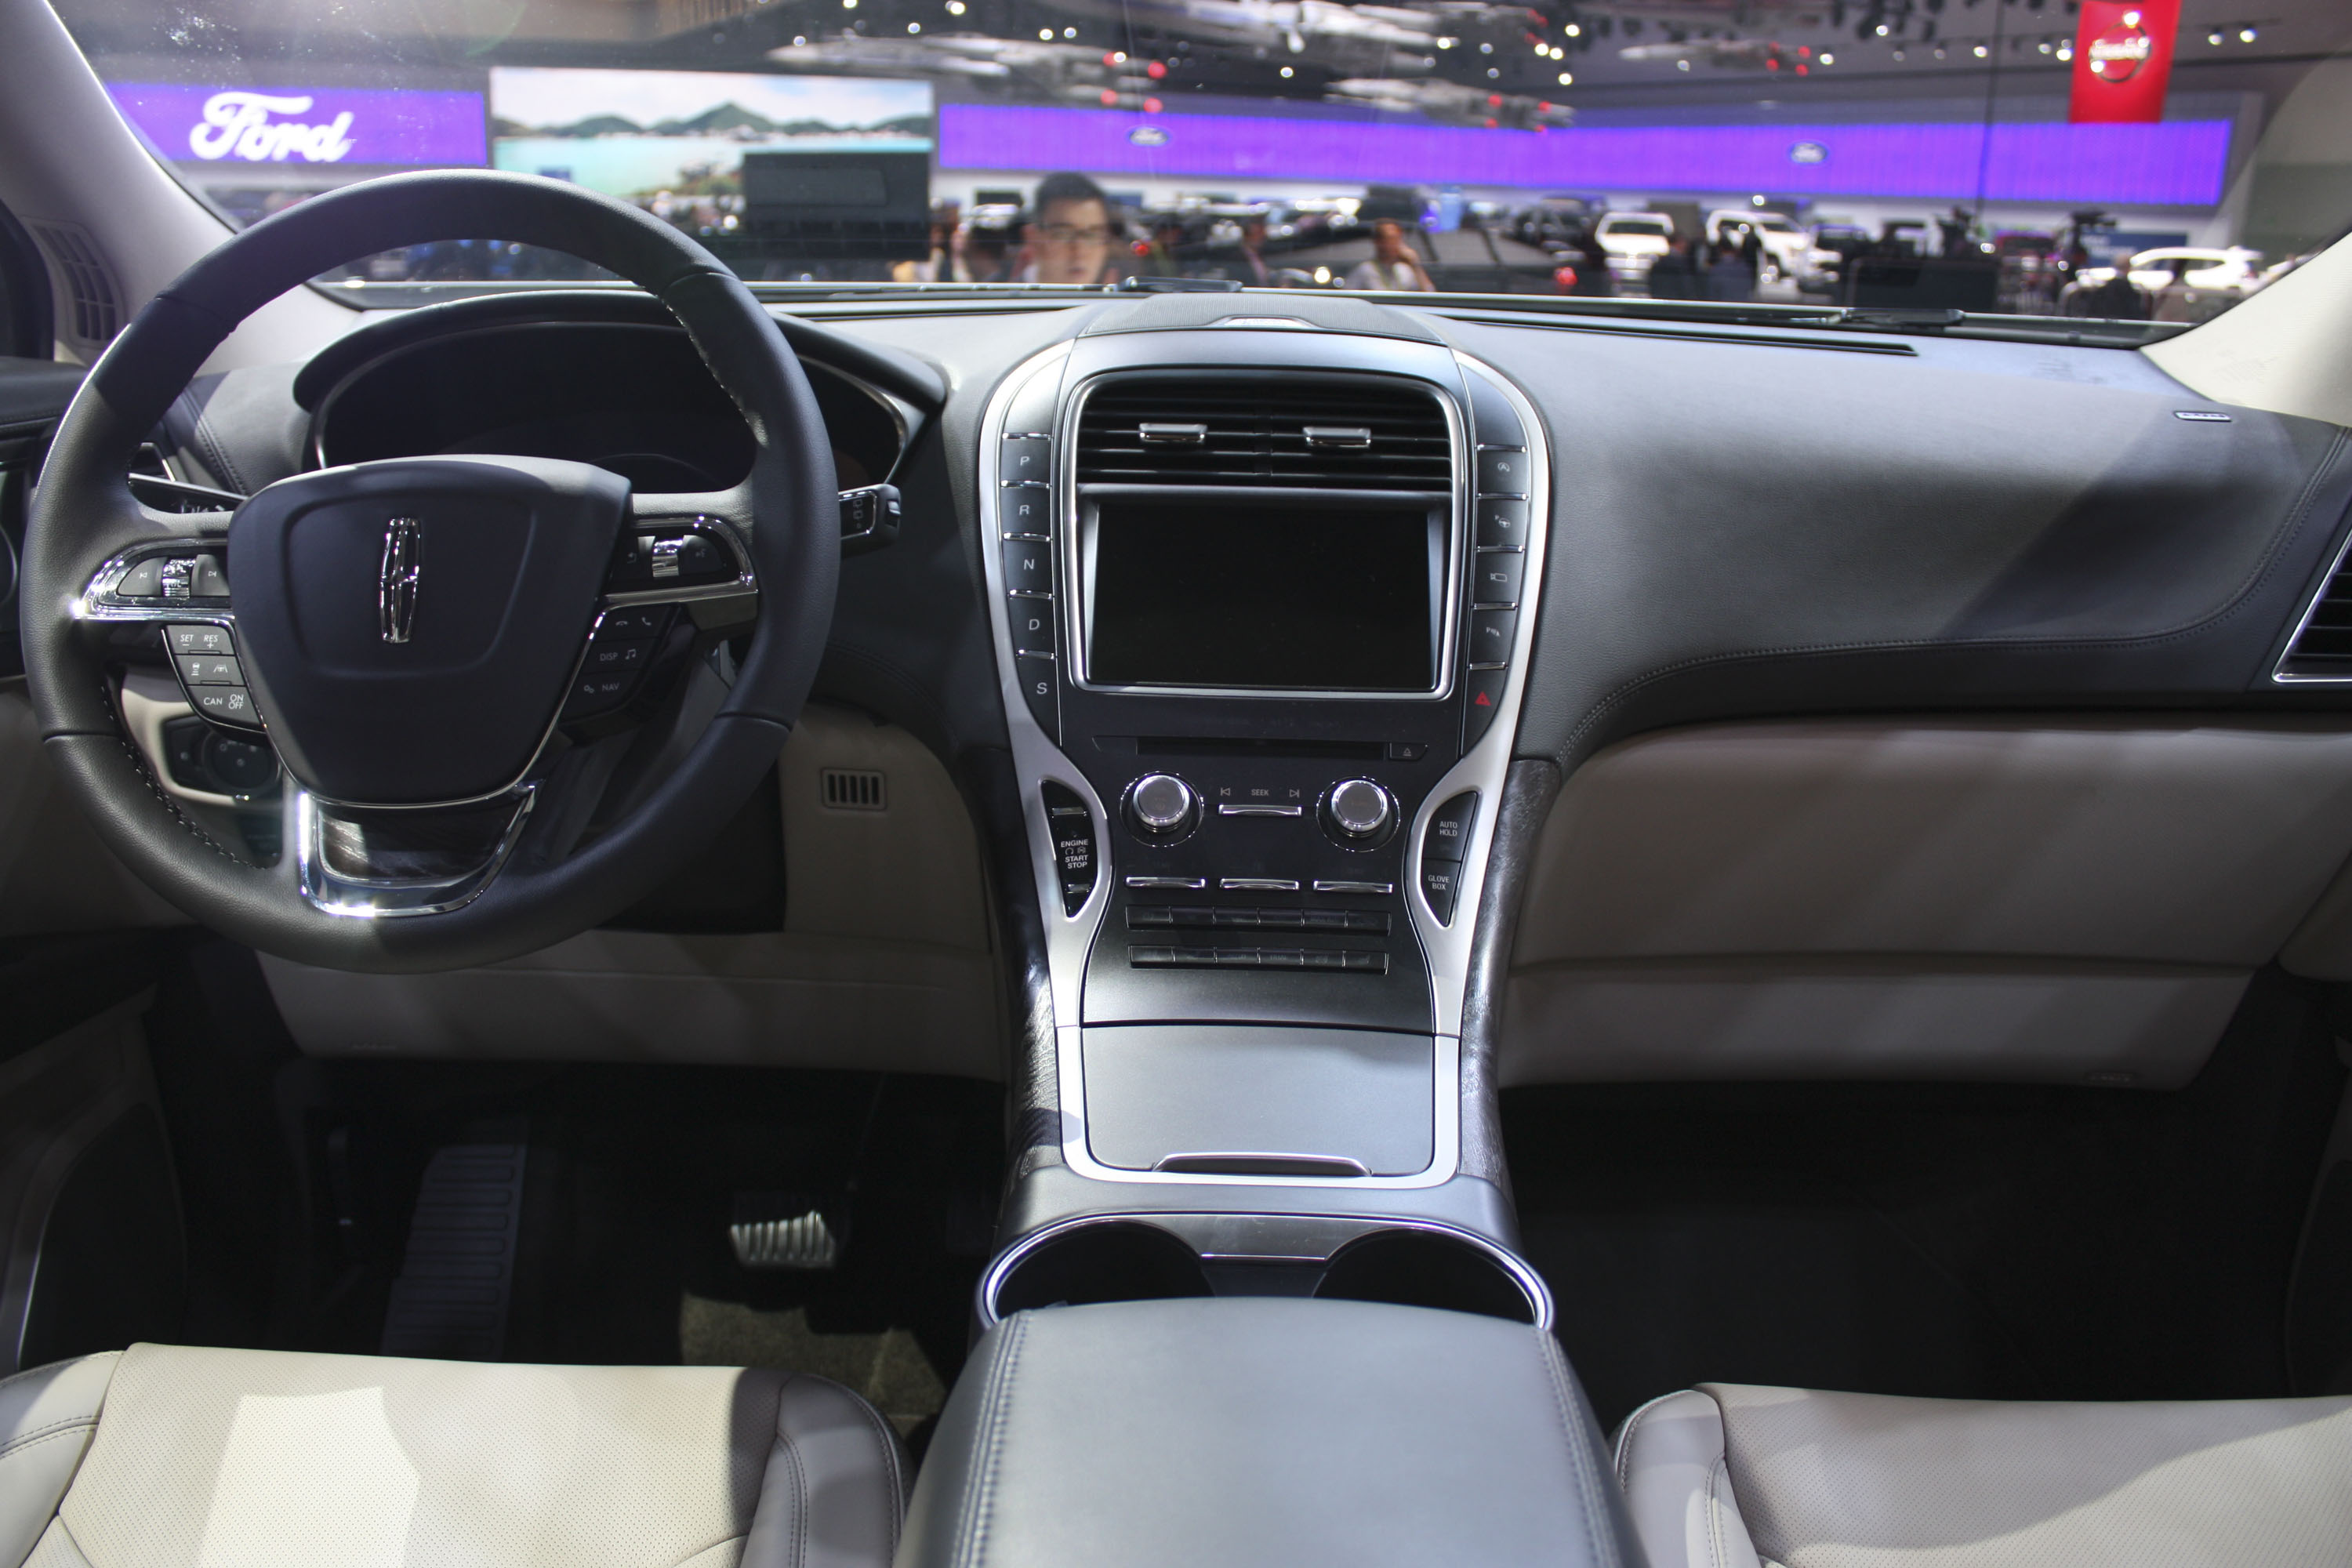 us roadside assistance aviator elegant content with next news techn lincolns lincoln lincolnmedia lna en previews suv s act power